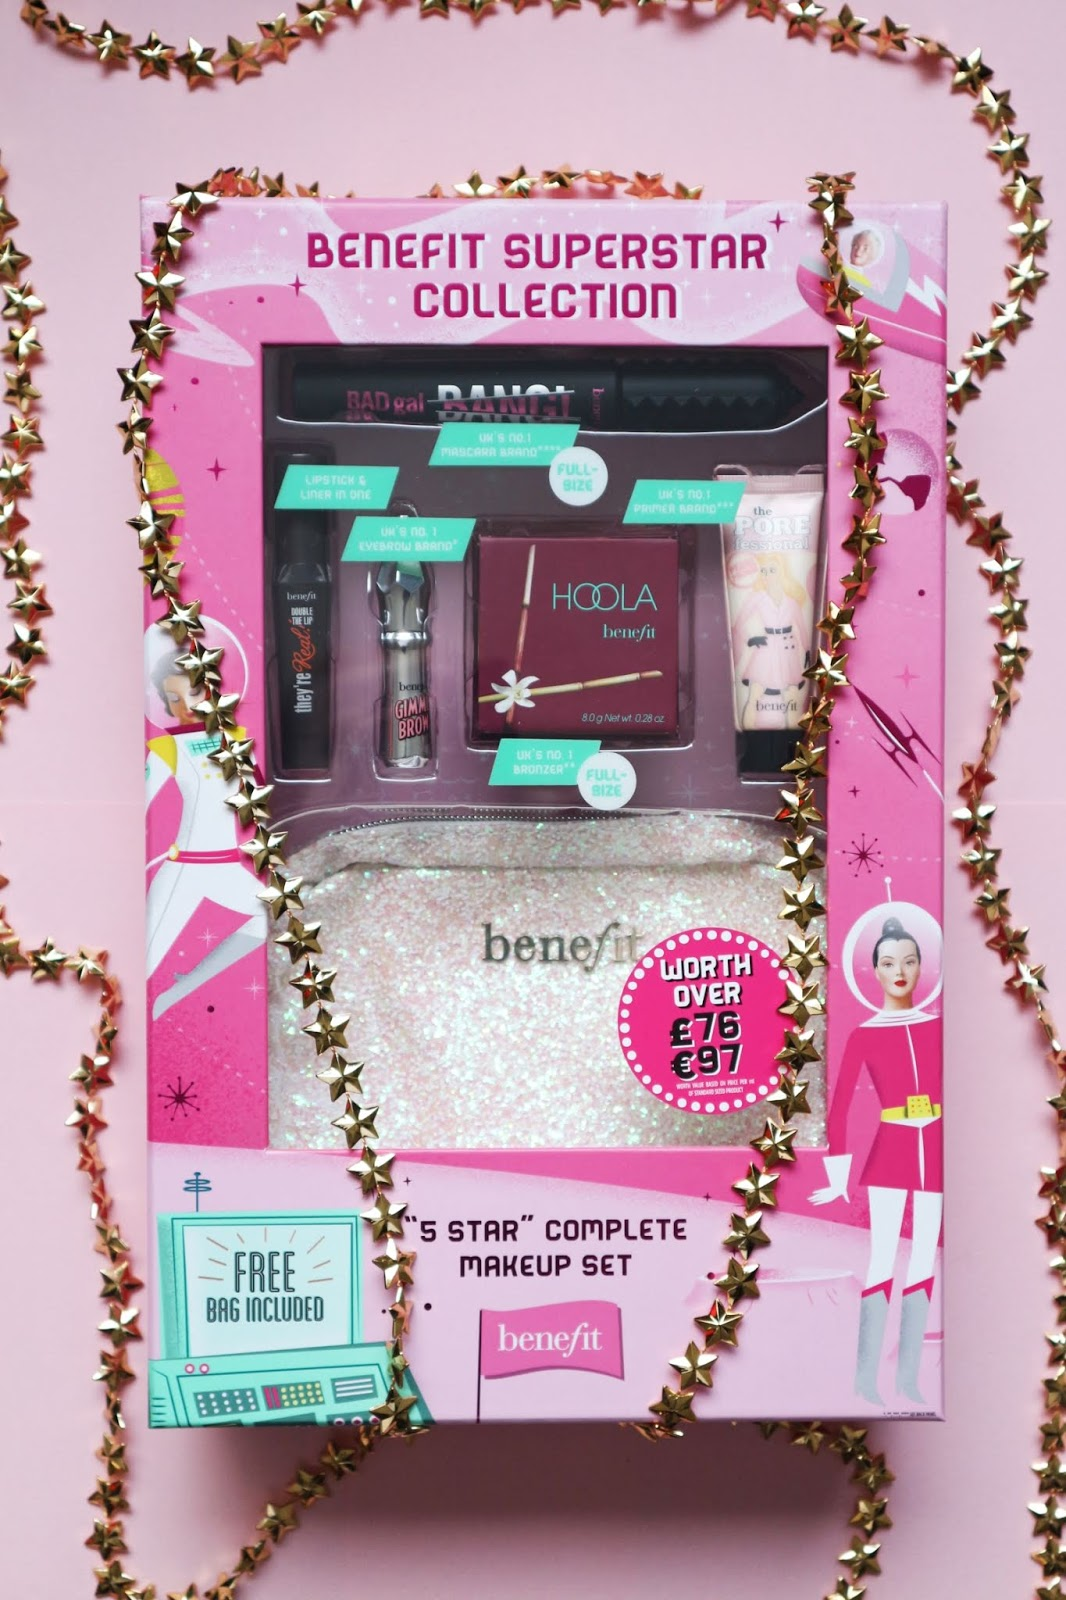 Benefit Superstar Collection Giveaway